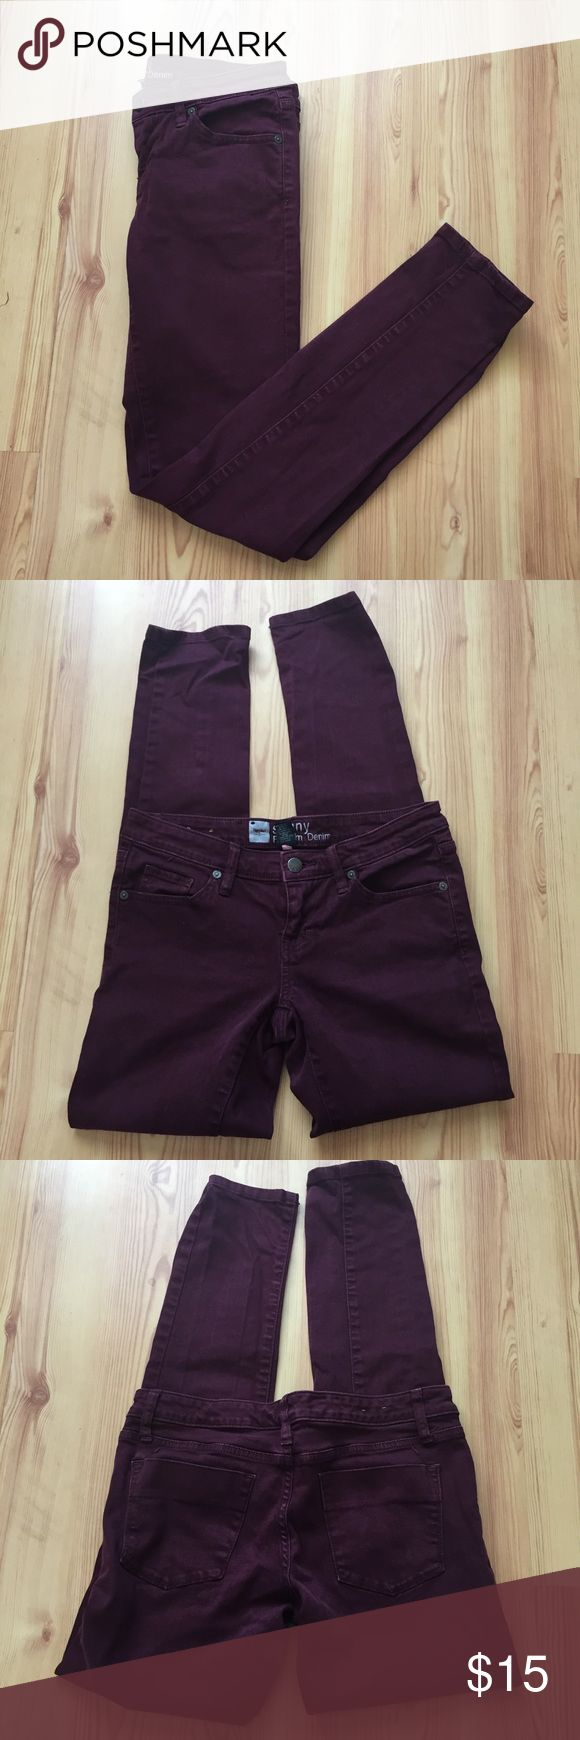 Mossimo Oxblood Jeans Dark red/oxblood jeans, appears darker in pictures then they really are. Gently worn but no flaws. Size 2. Please ask for measurements if unsure about sizing. Mossimo Supply Co. Pants Skinny